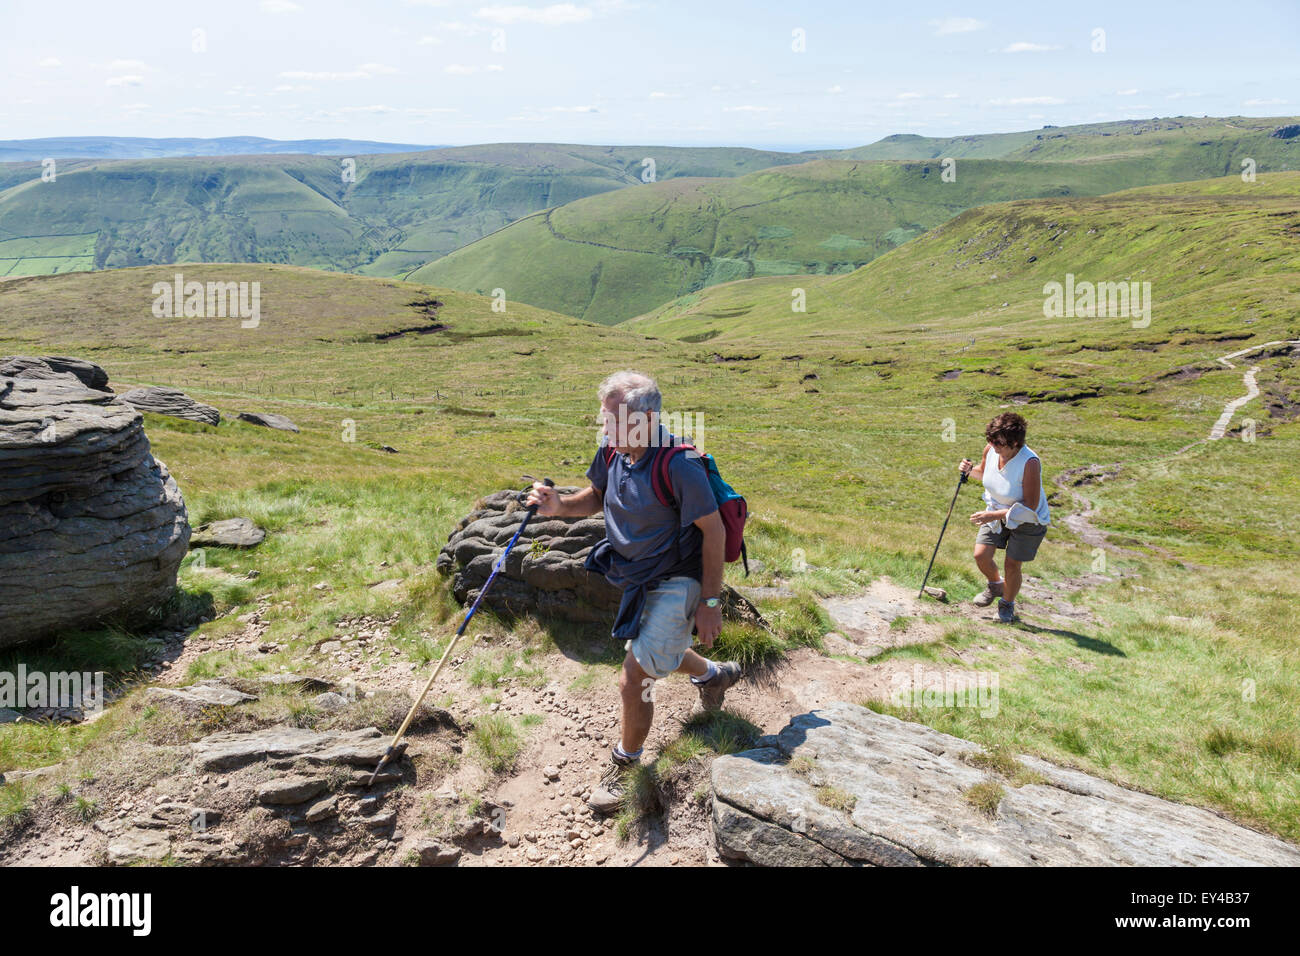 Hill walkers in the English countryside during Summer walking up Grindslow Knoll on Kinder Scout, Derbyshire, Peak - Stock Image